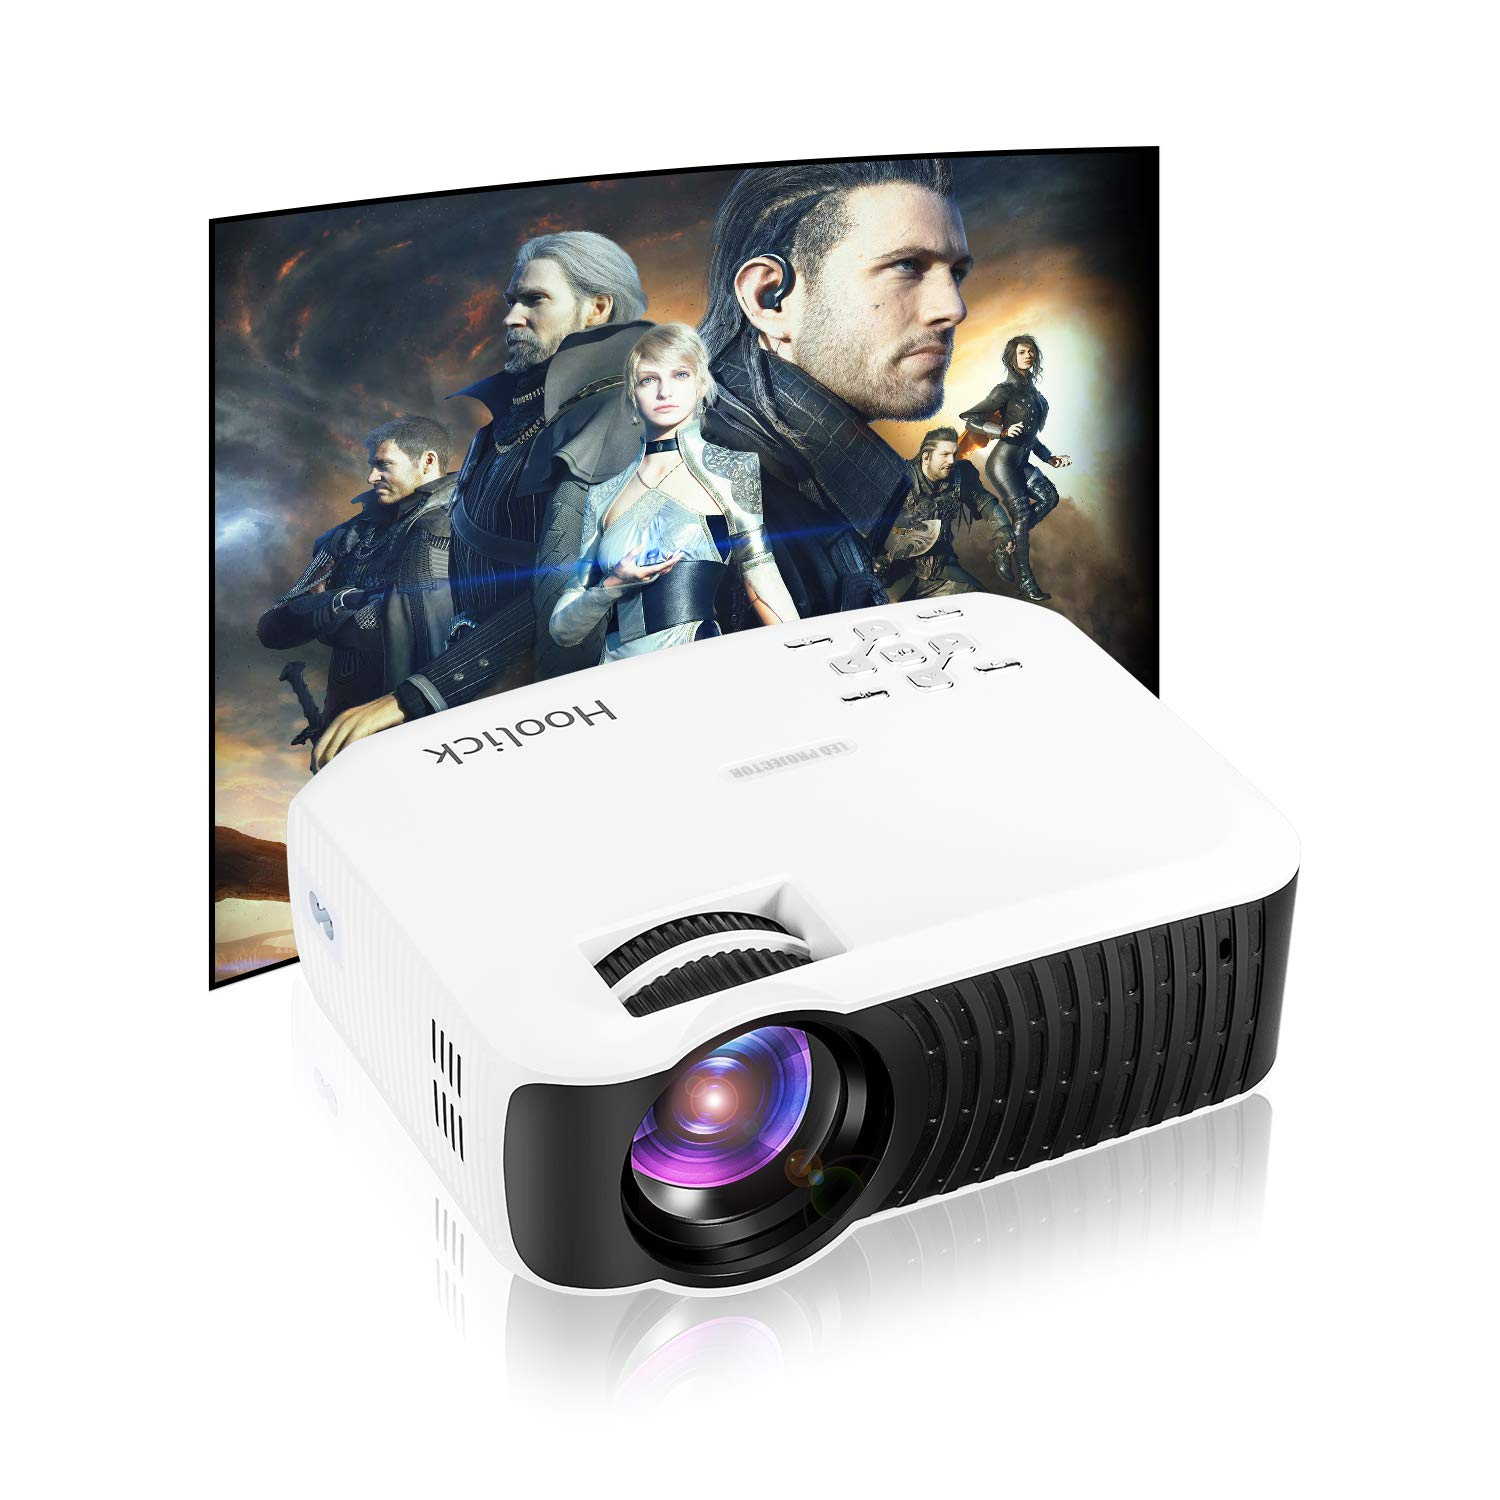 Projector, Mini Projector, Portable Projector 2400 Lumens Projector Video Projector 1080P HDMI/VGA/USB/AV PC/Mac/TV/DVD/iPhone/iPad/Home Theater/Outdoor/Video Games